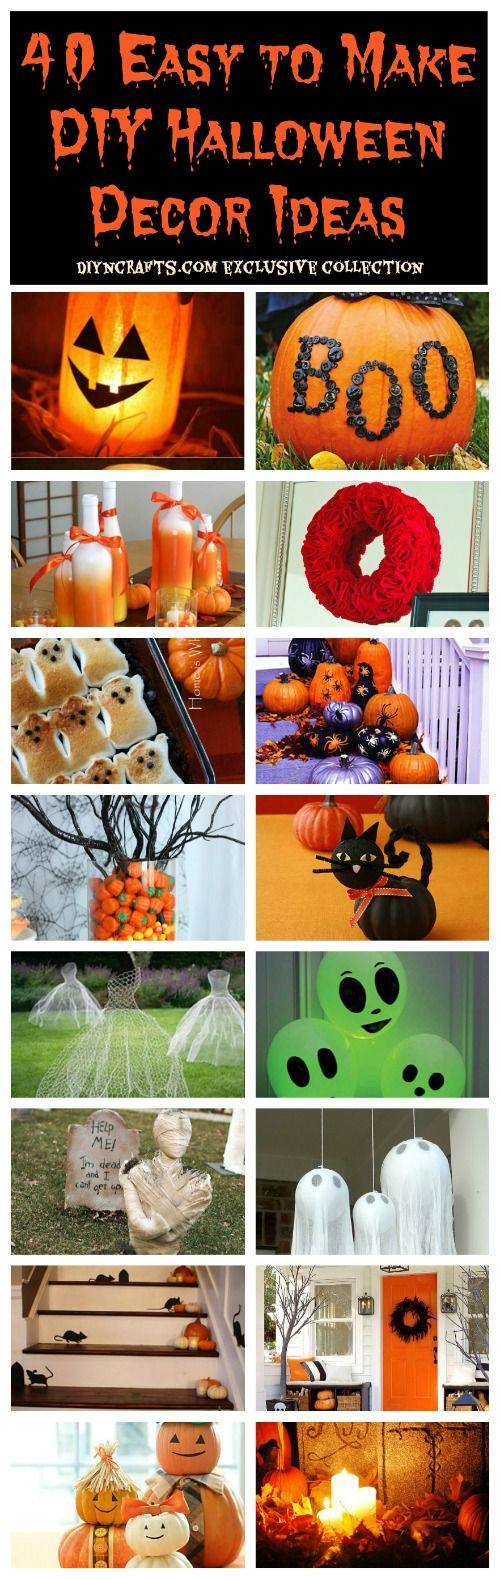 40 Easy to Make DIY Halloween Decor Ideas – Page 4 of 4 – DIY & Crafts